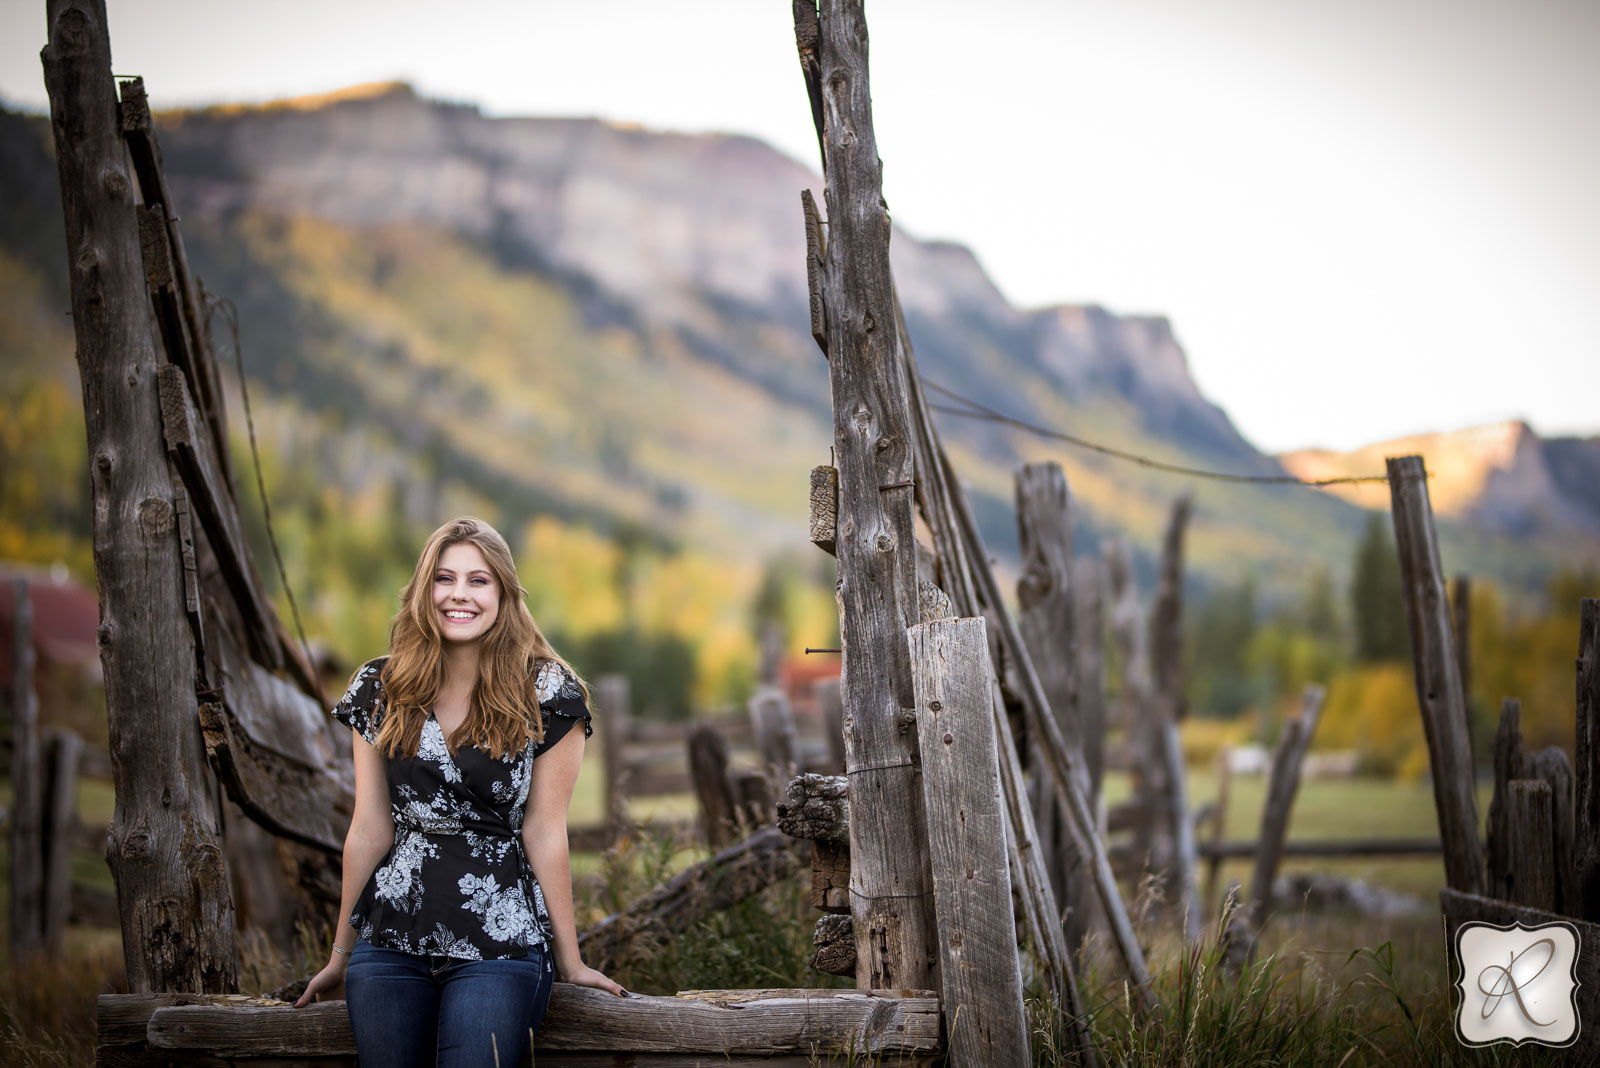 Portraits done by Allison Ragsdale Photography